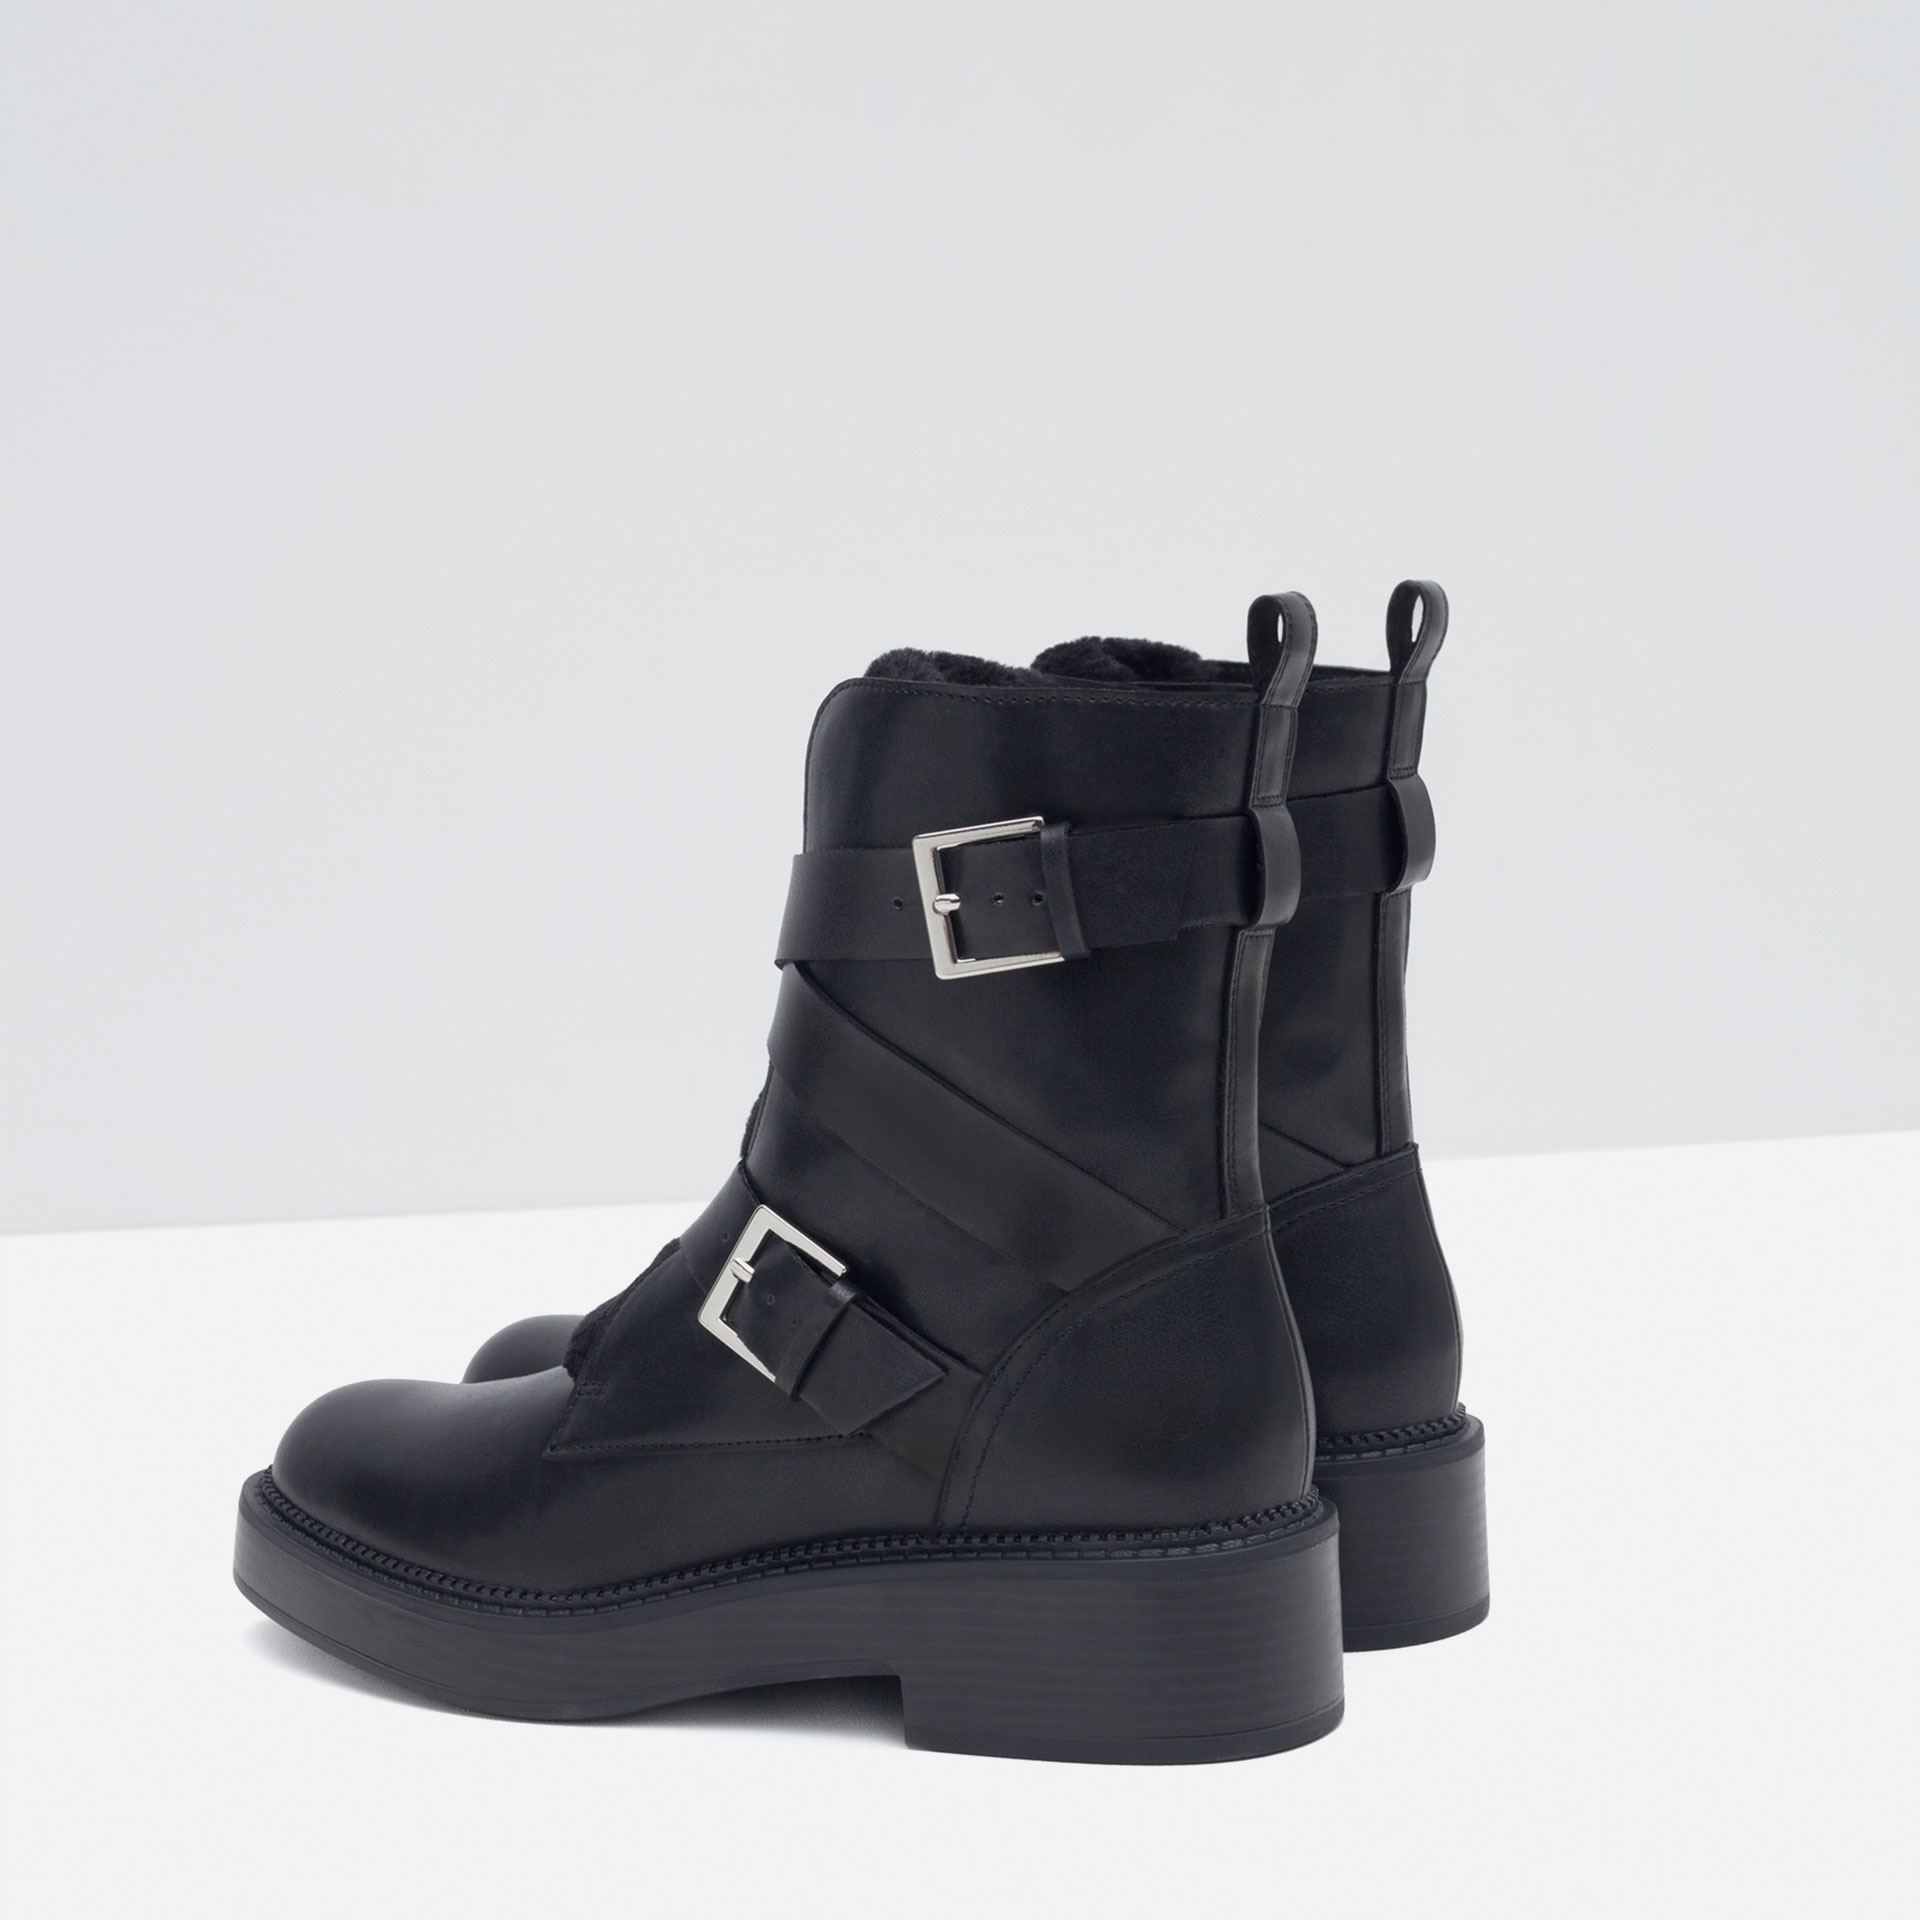 Zara Flat Ankle Boots With Buckles in Black | Lyst